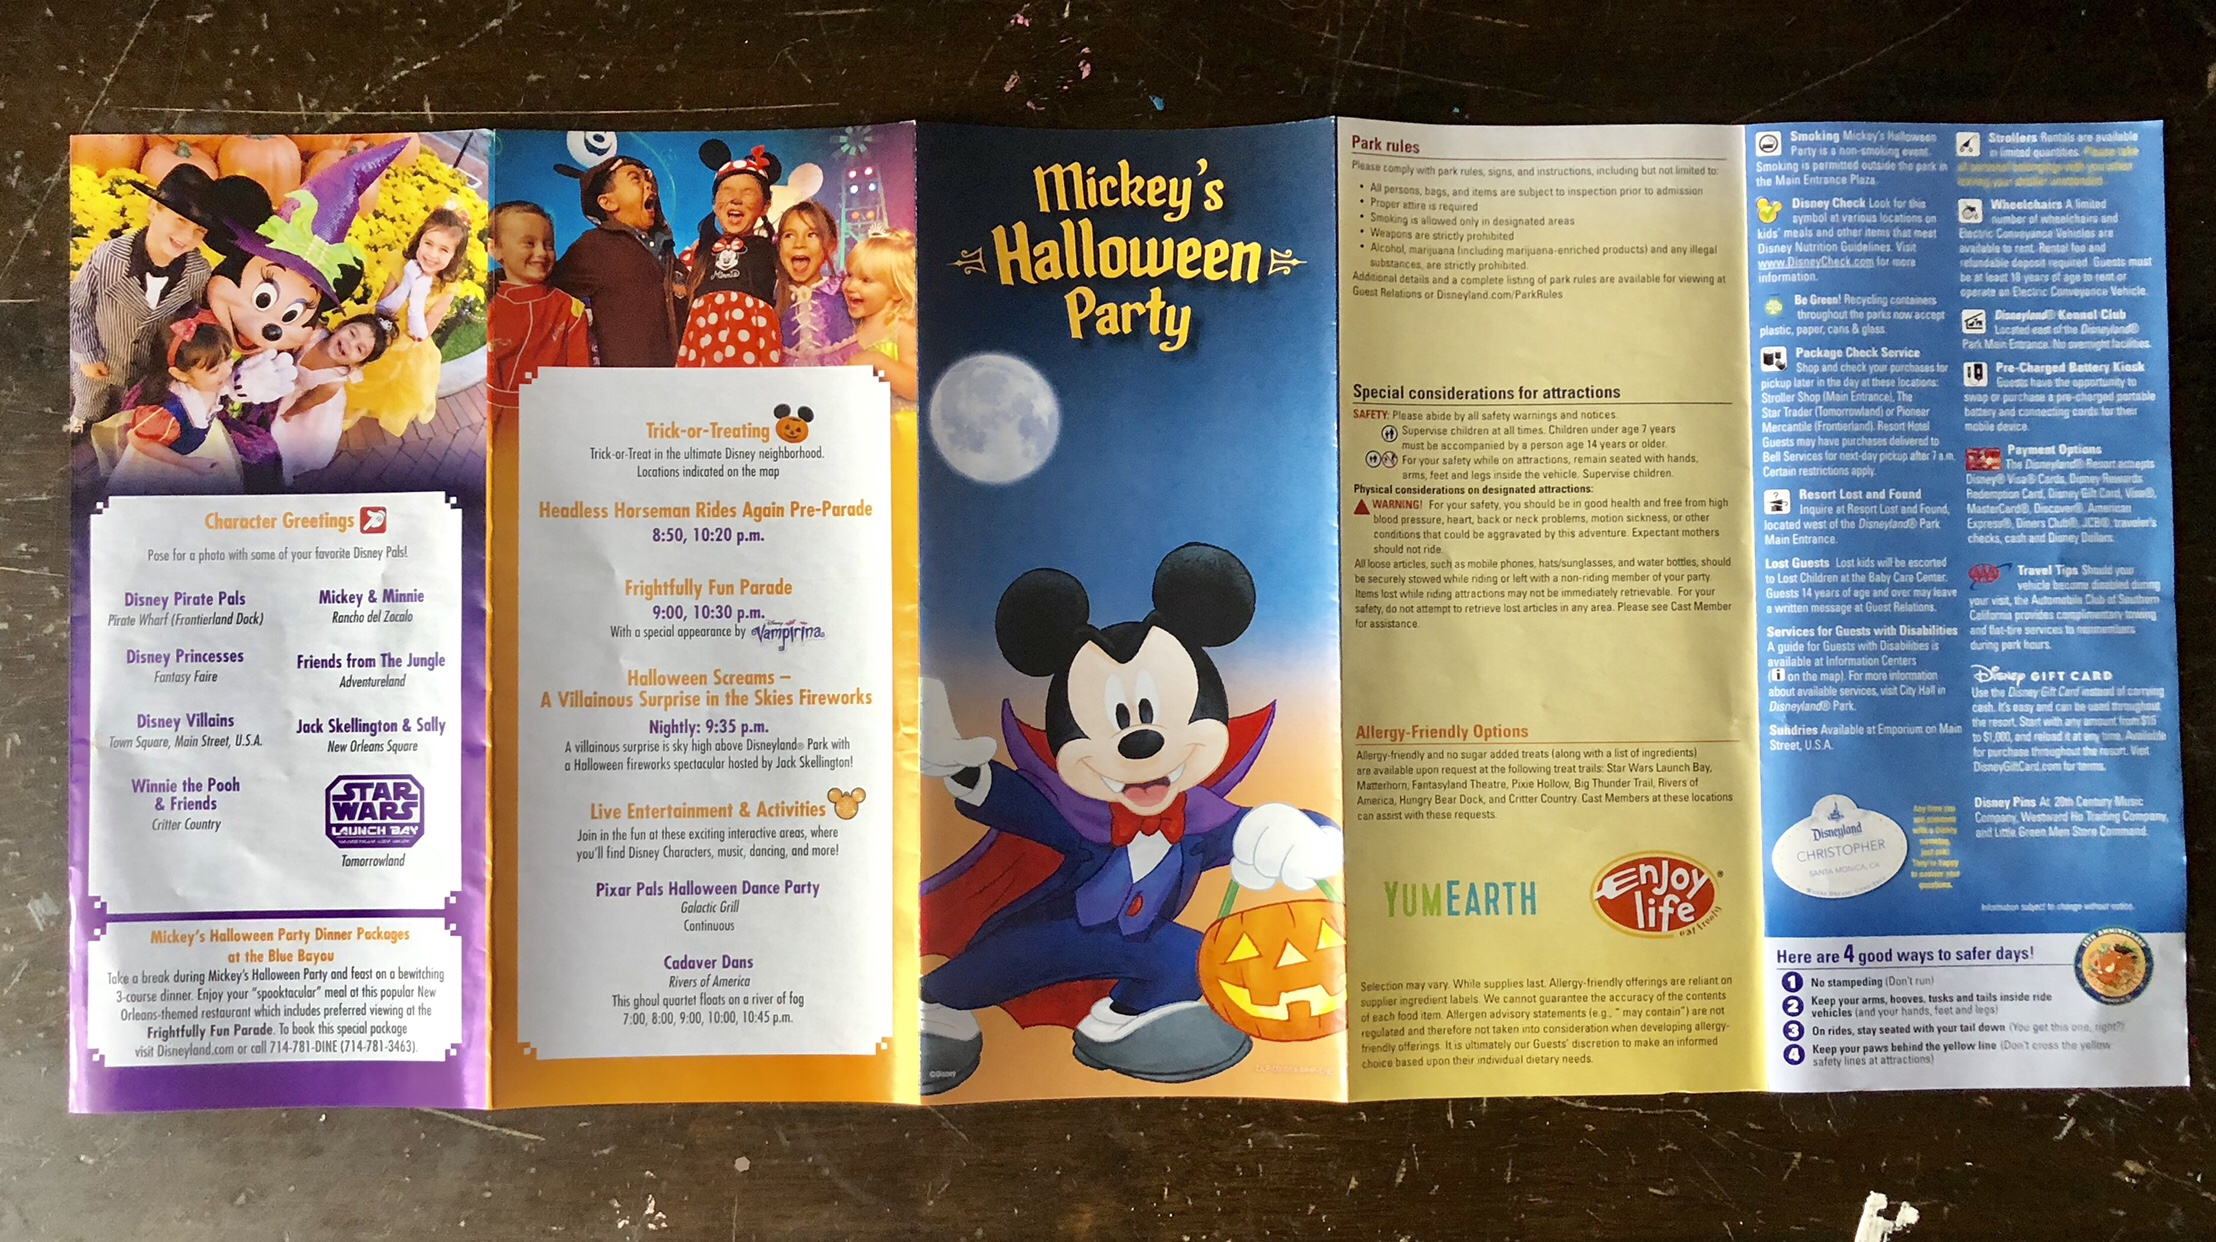 your guide to mickey's halloween party and halloween time at